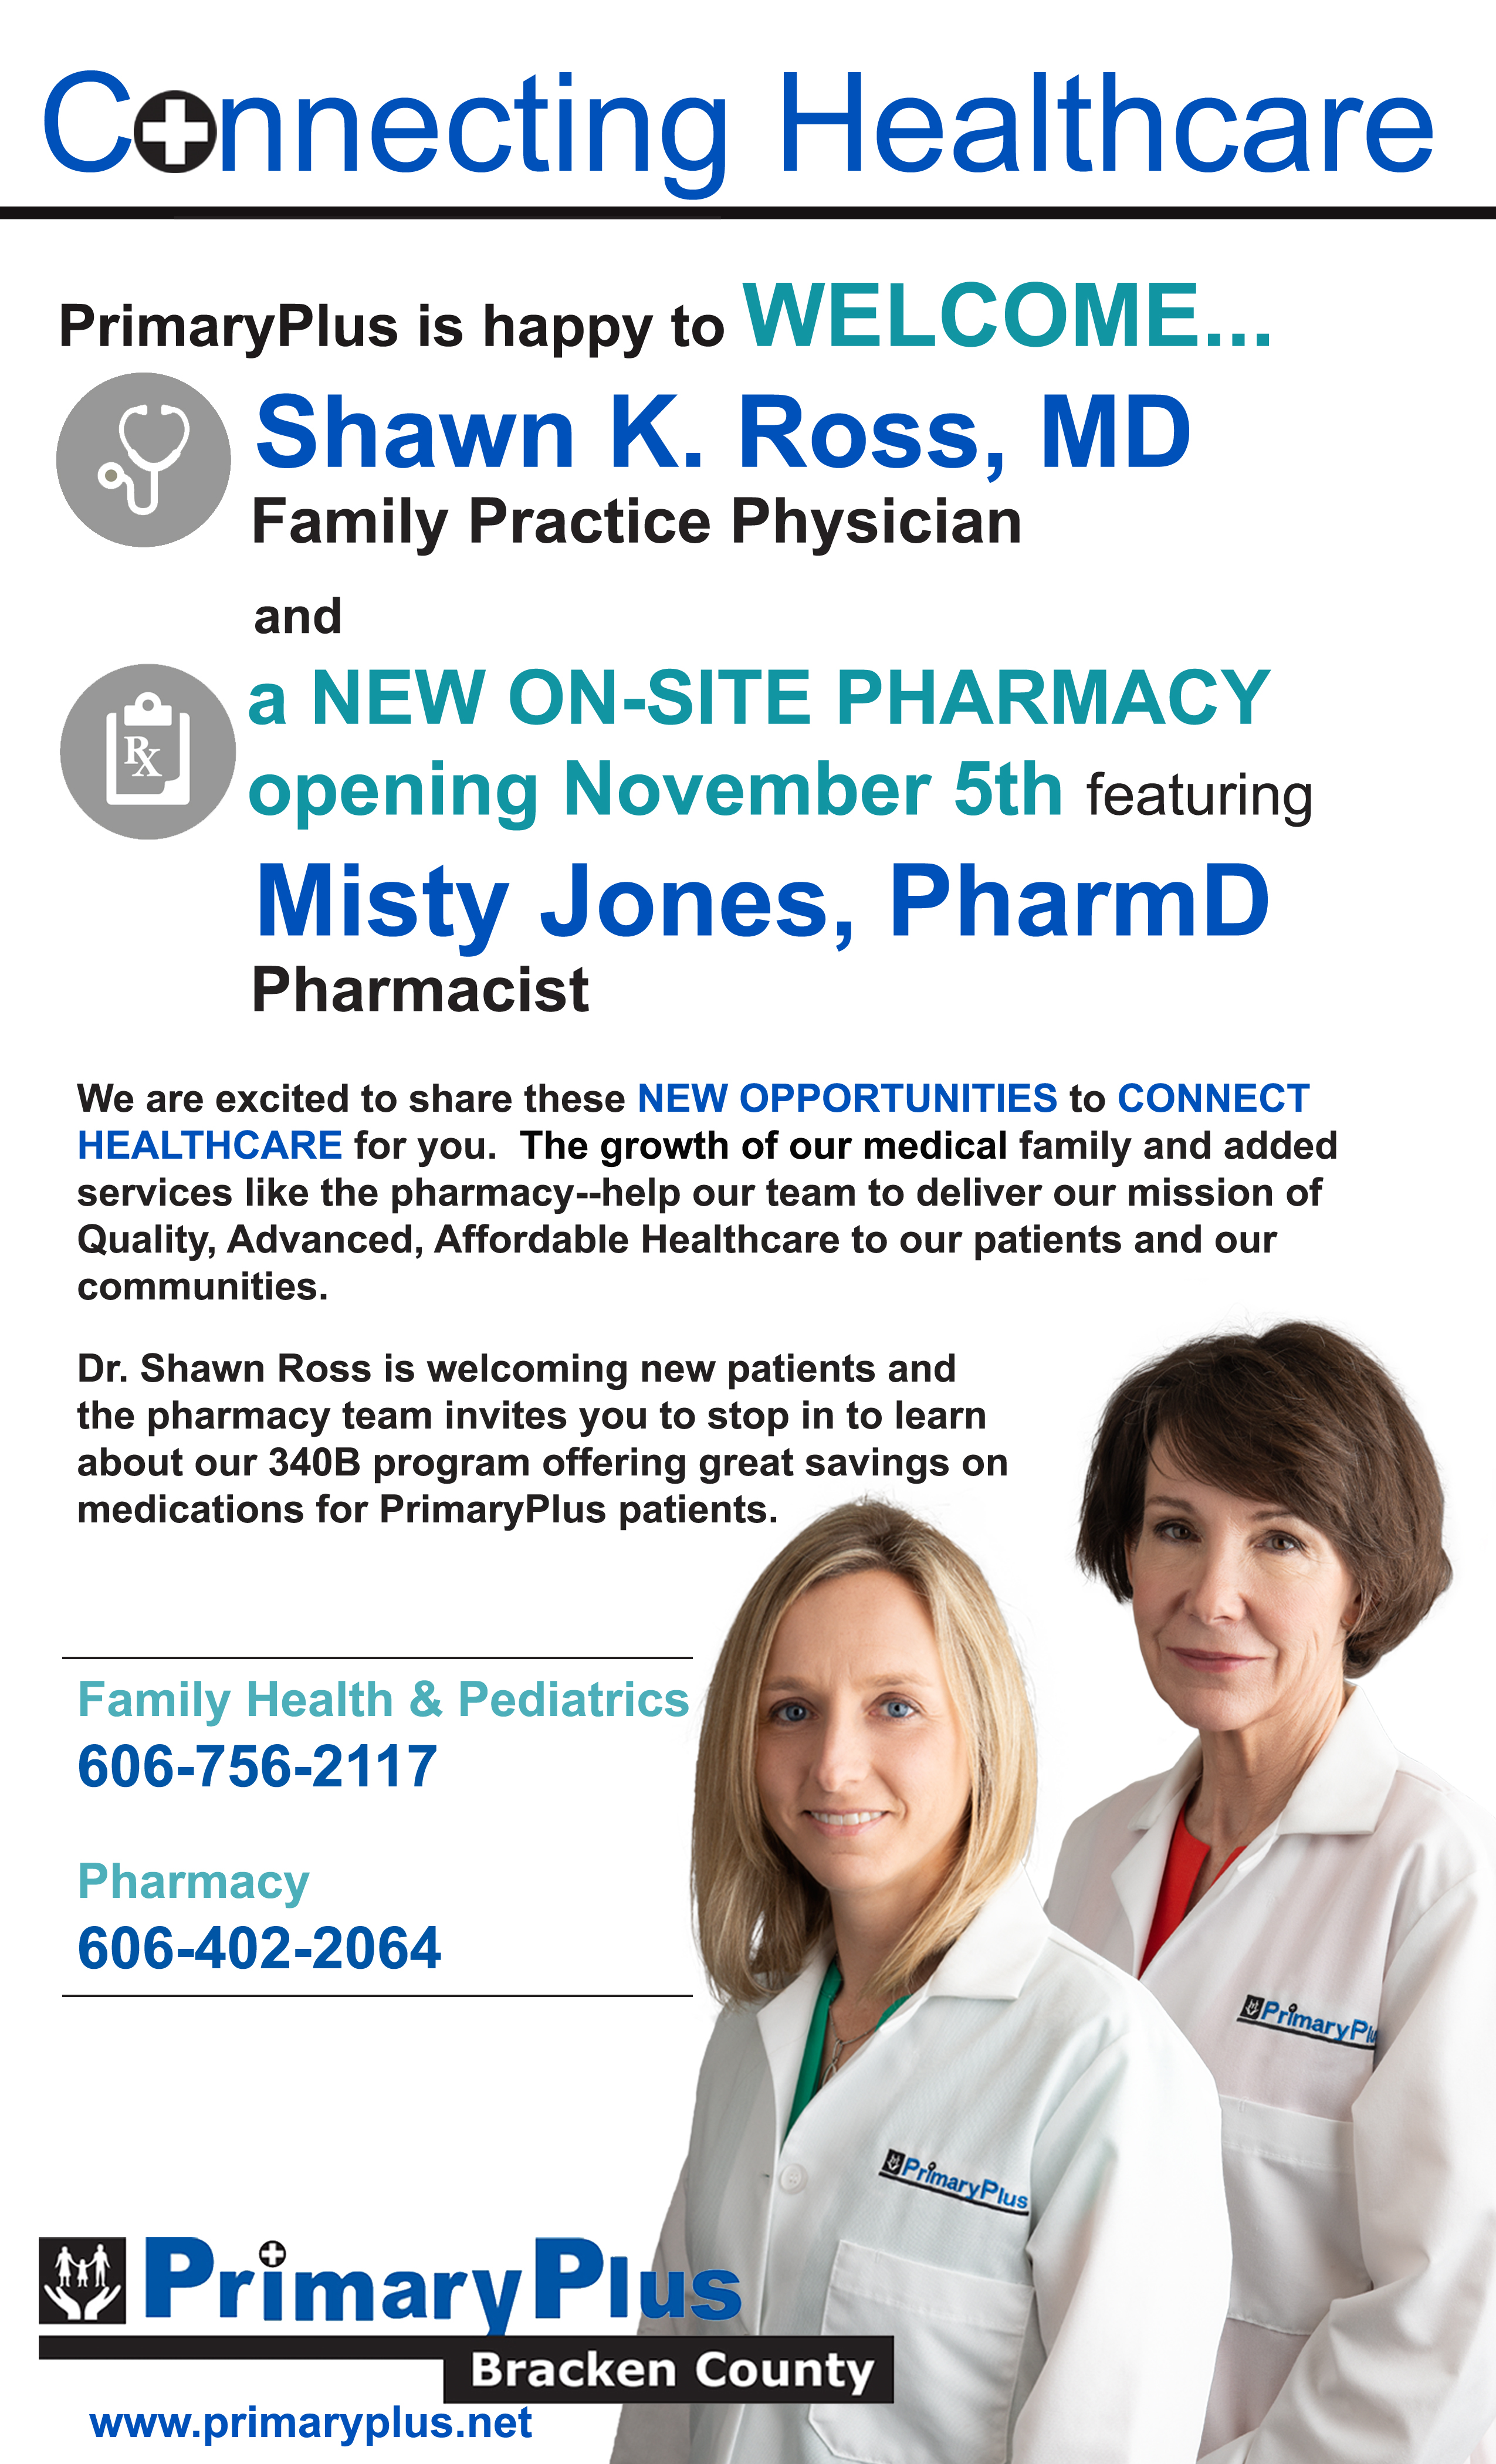 PrimaryPlus-Bracken Welcomes Dr. Shawn Ross & a New On-Site Pharmacy News